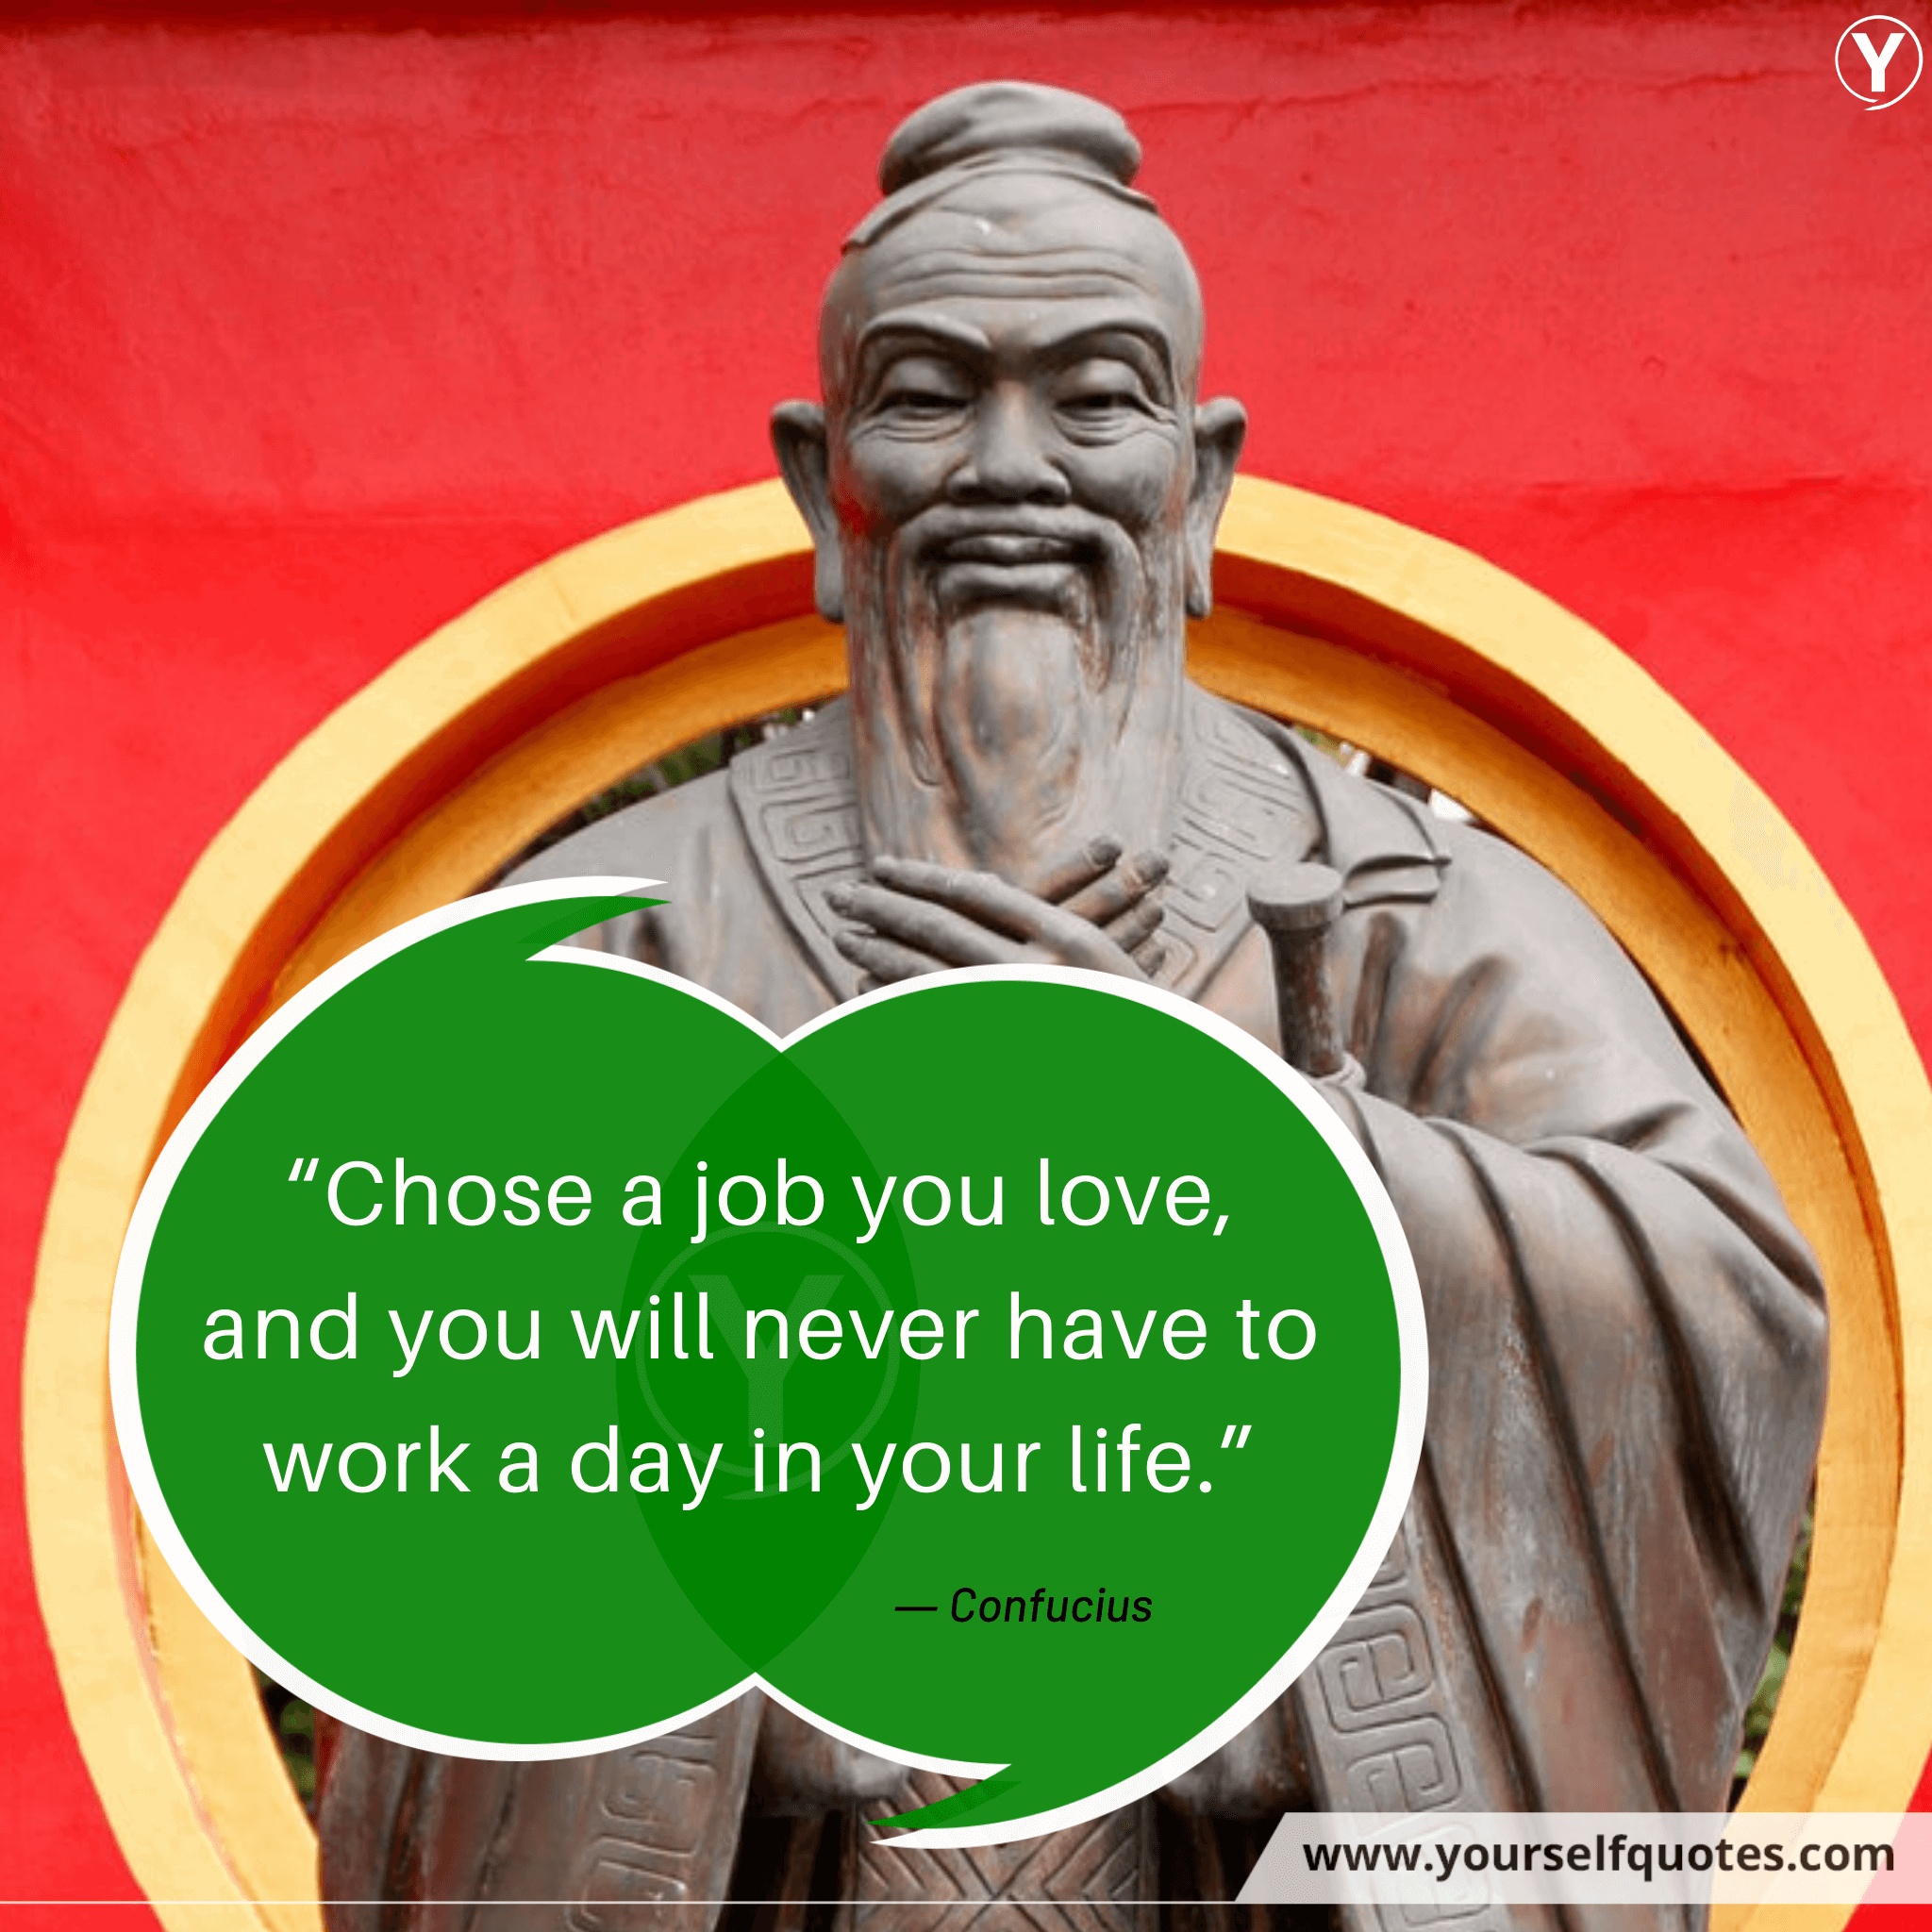 Quotes on Life by Confucius